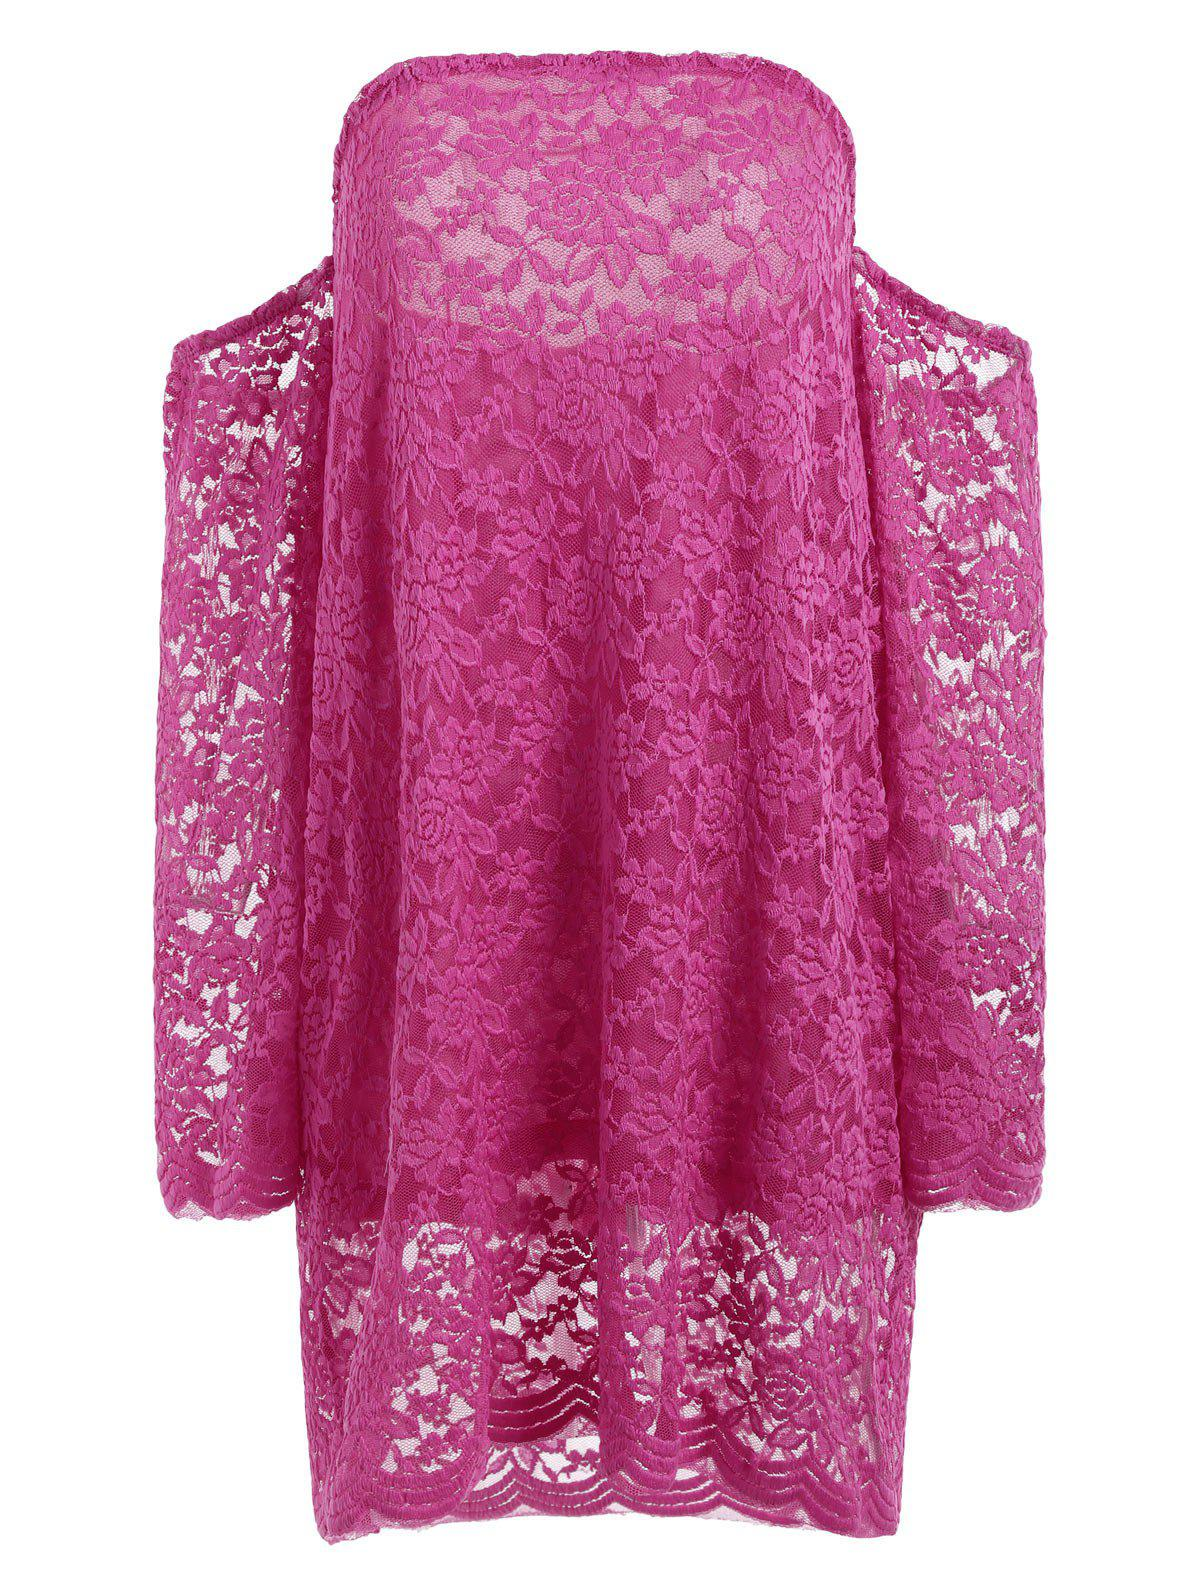 Long Sleeve Lace Off The Shoulder Dress - ROSE L